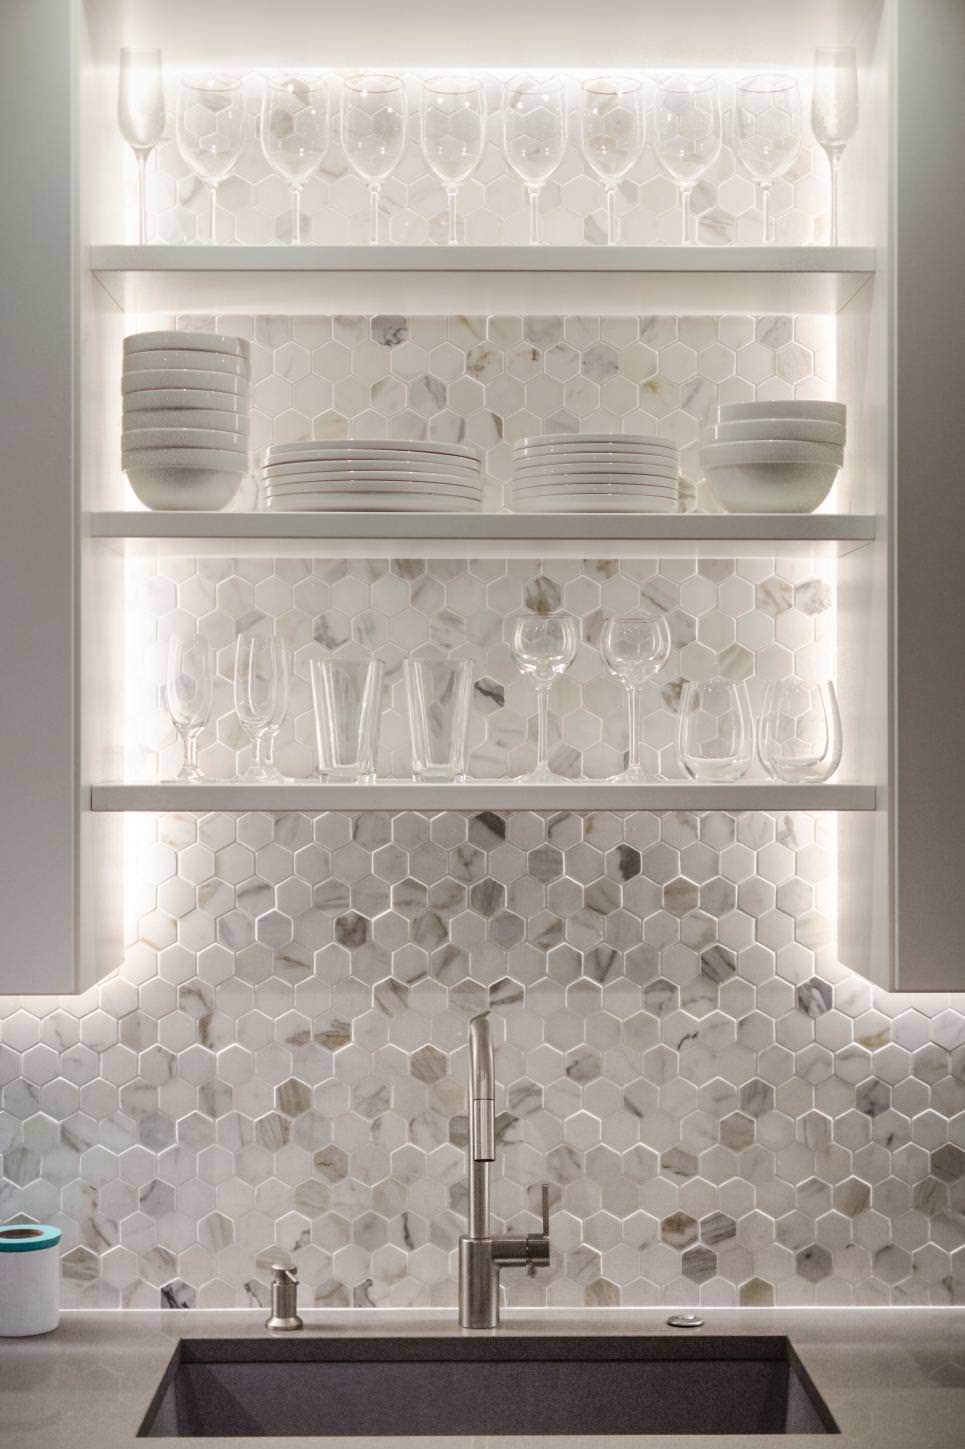 Crystal Shining White Kitchen Shelving Designs